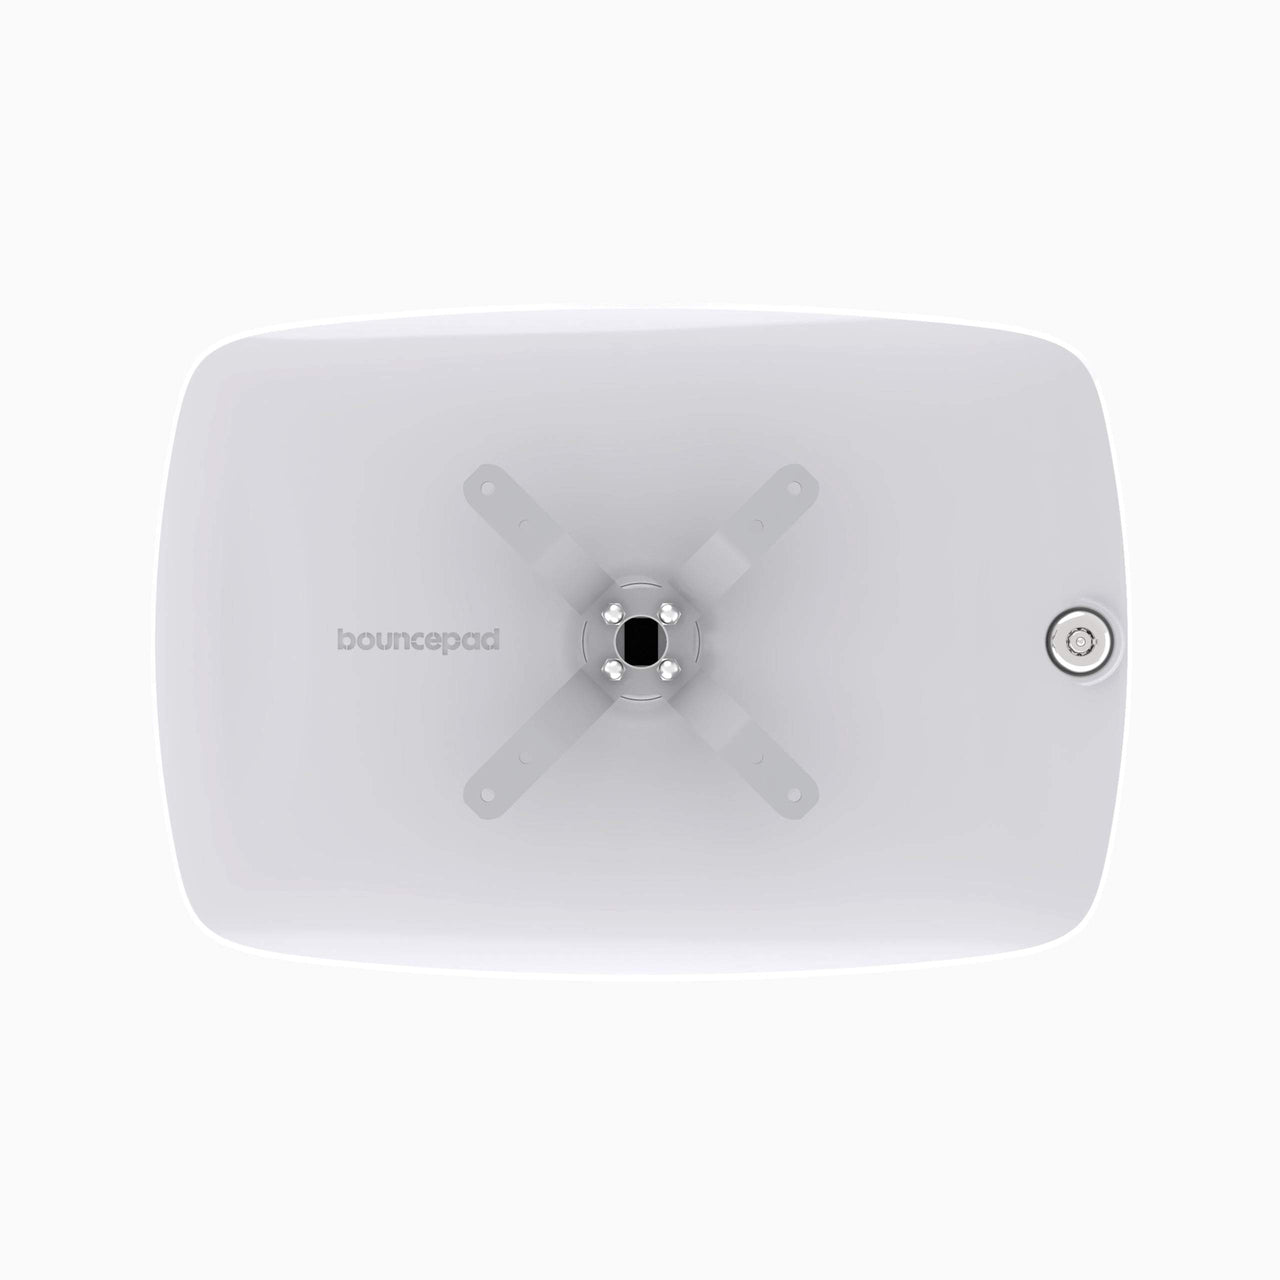 Bouncepad Vesa - A secure tablet & iPad vesa mount in white.